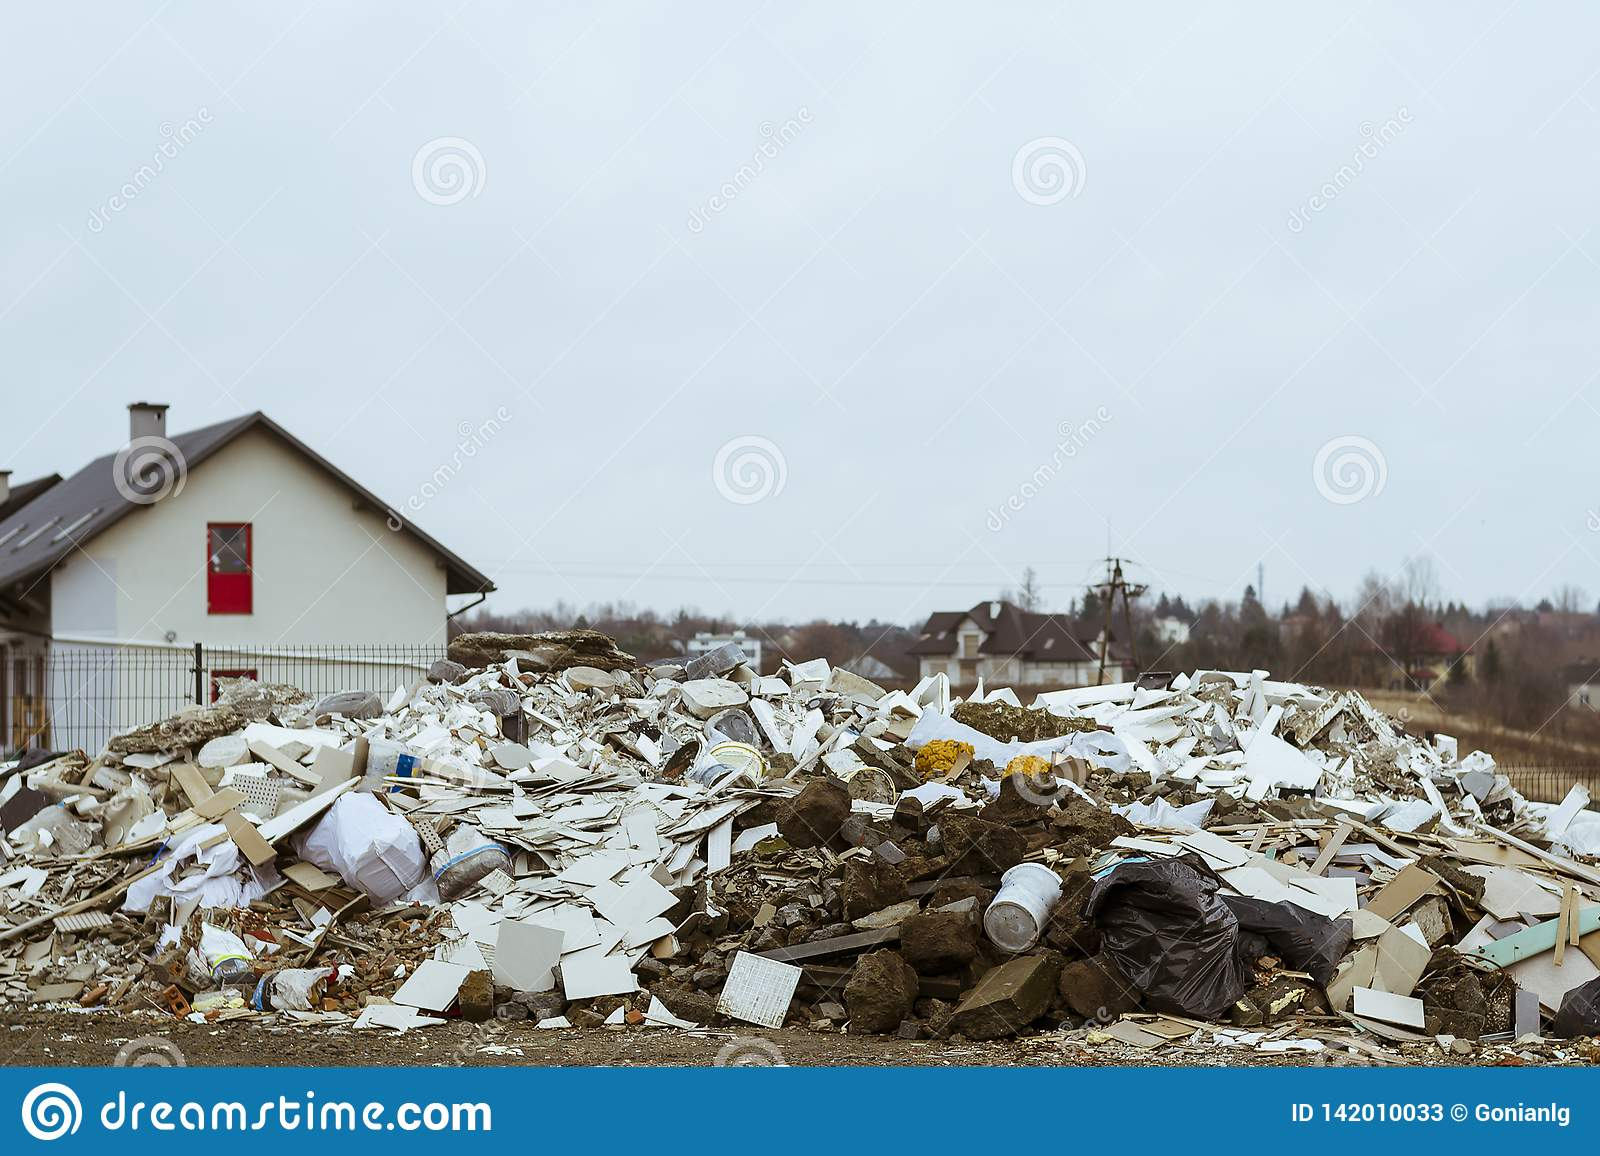 Dump in a residential area. Construction waste illegally thrown away in a residential area